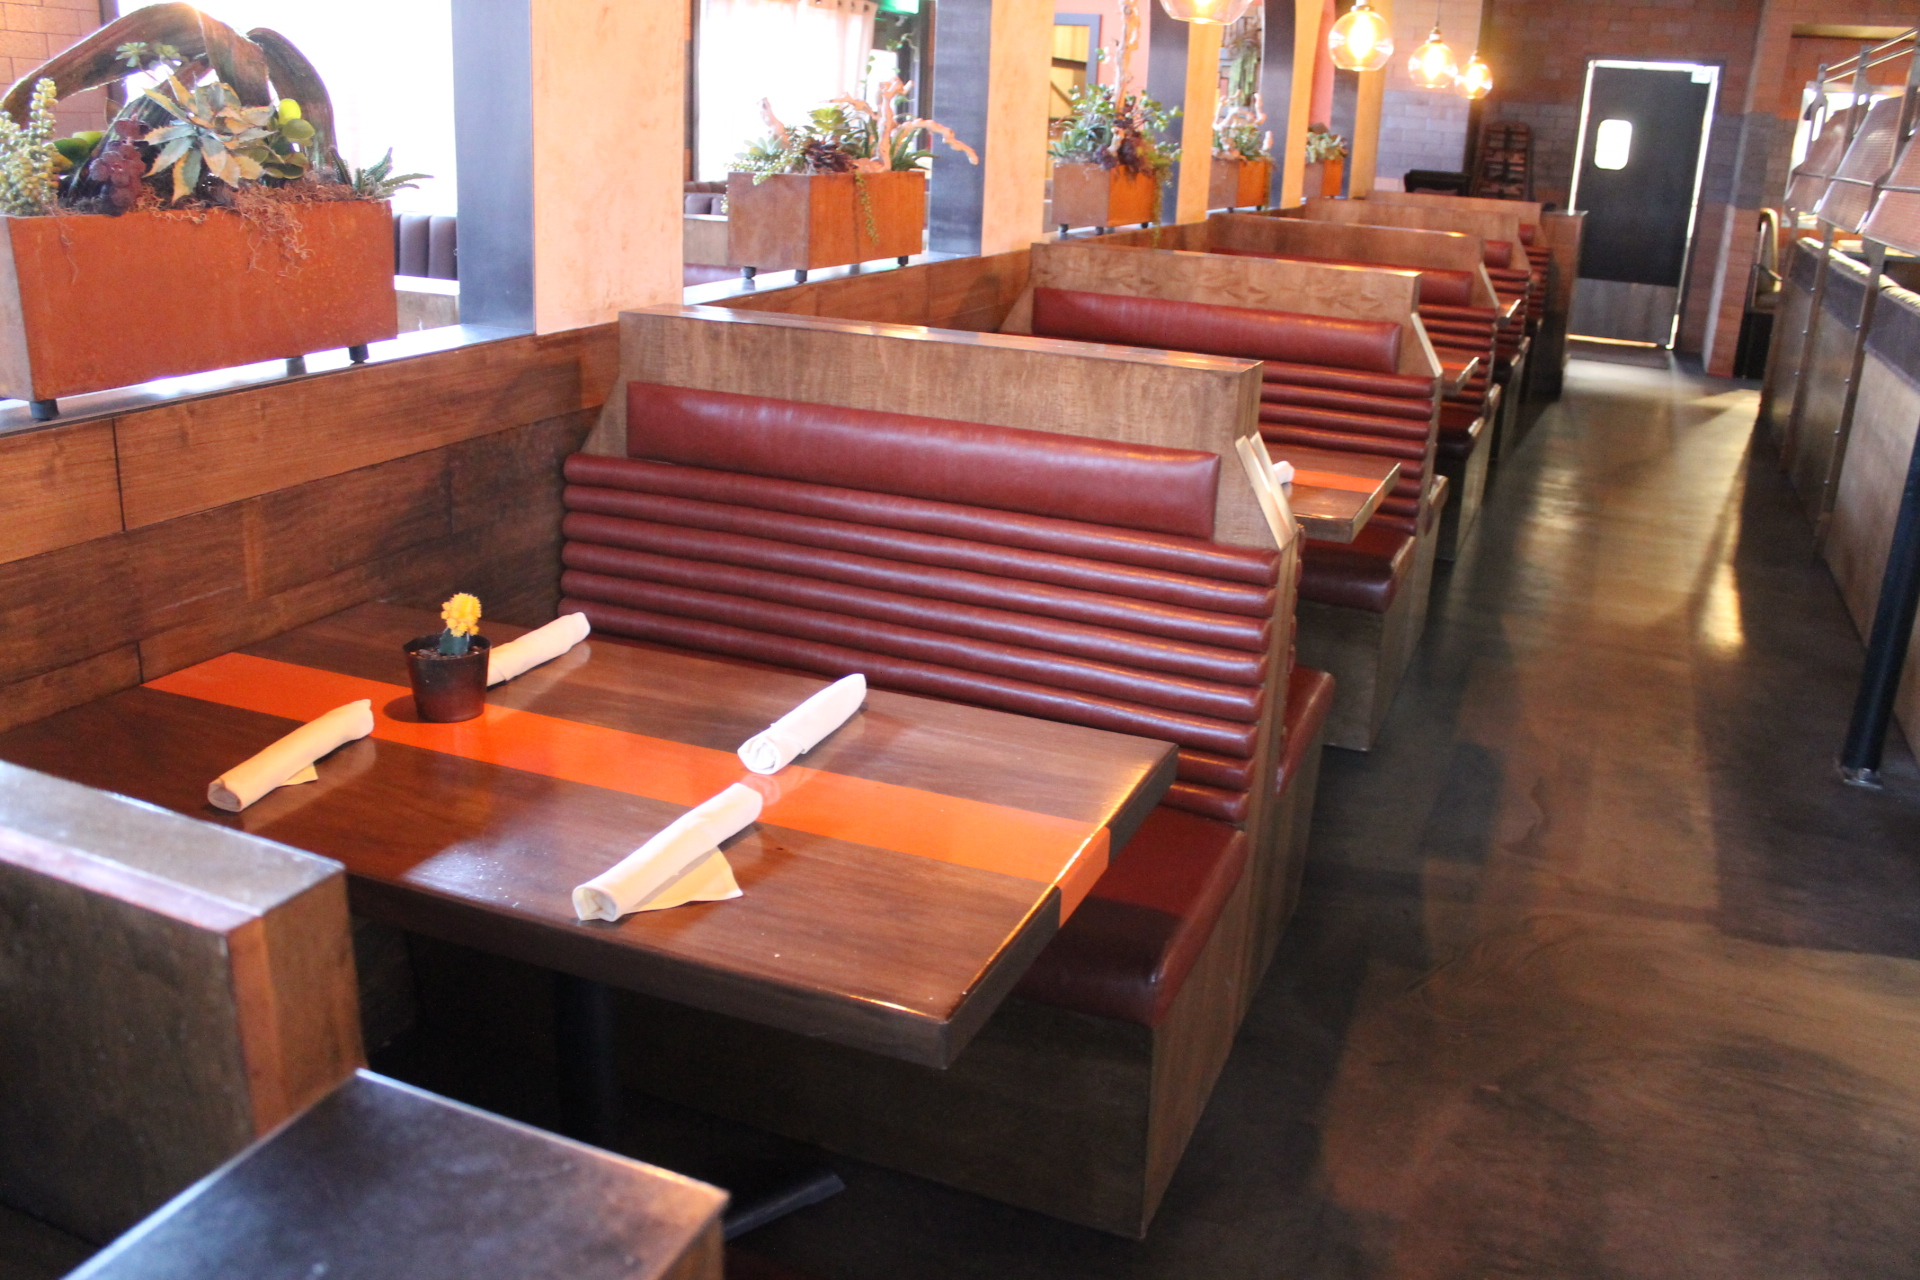 A leader in restaurant furniture upholstery and restaurant bench fabrication.